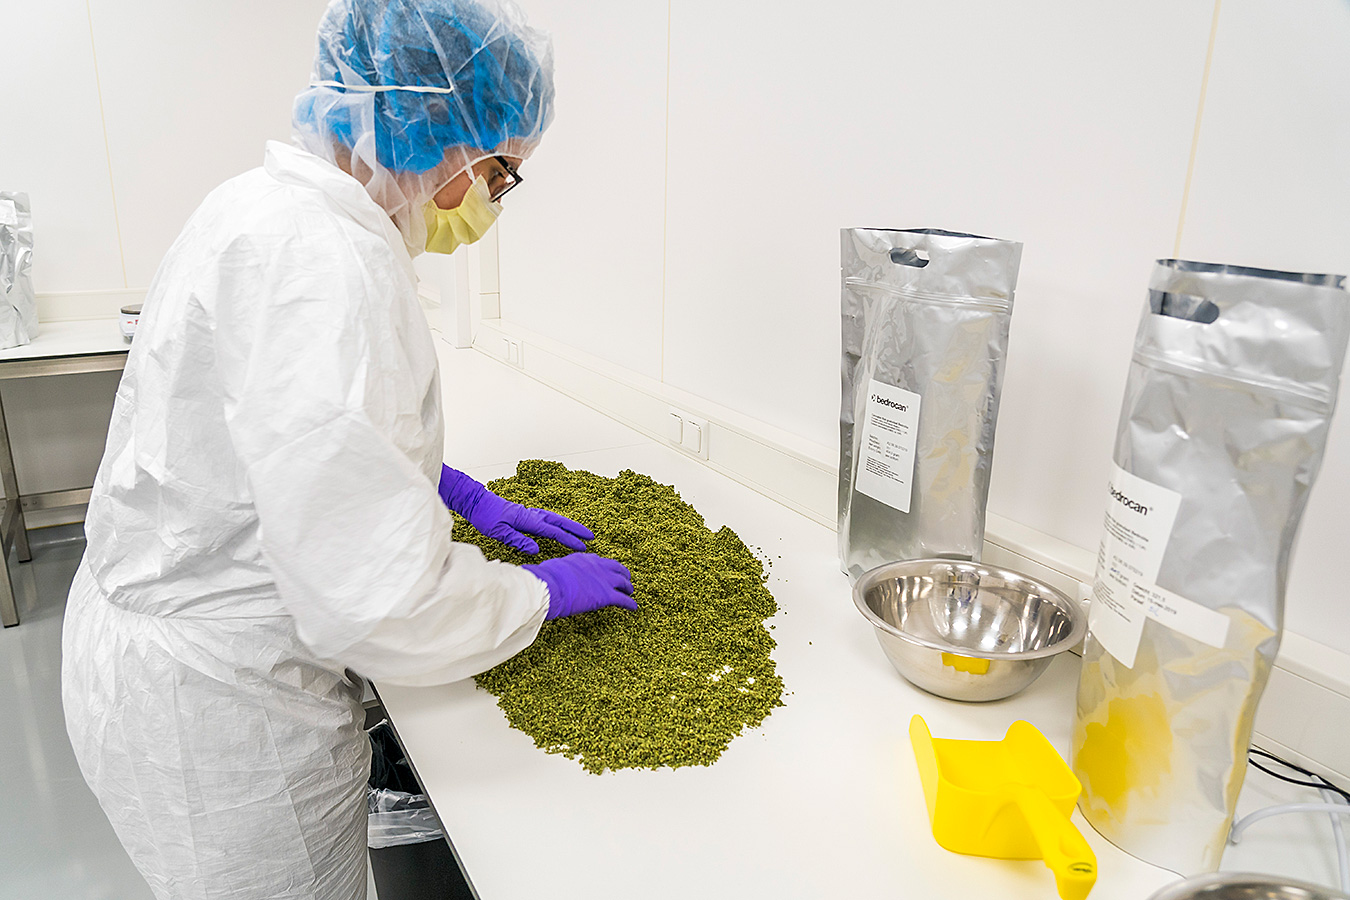 The Dutch OMC checks the medicinal cannabis at Bedrocan's facility